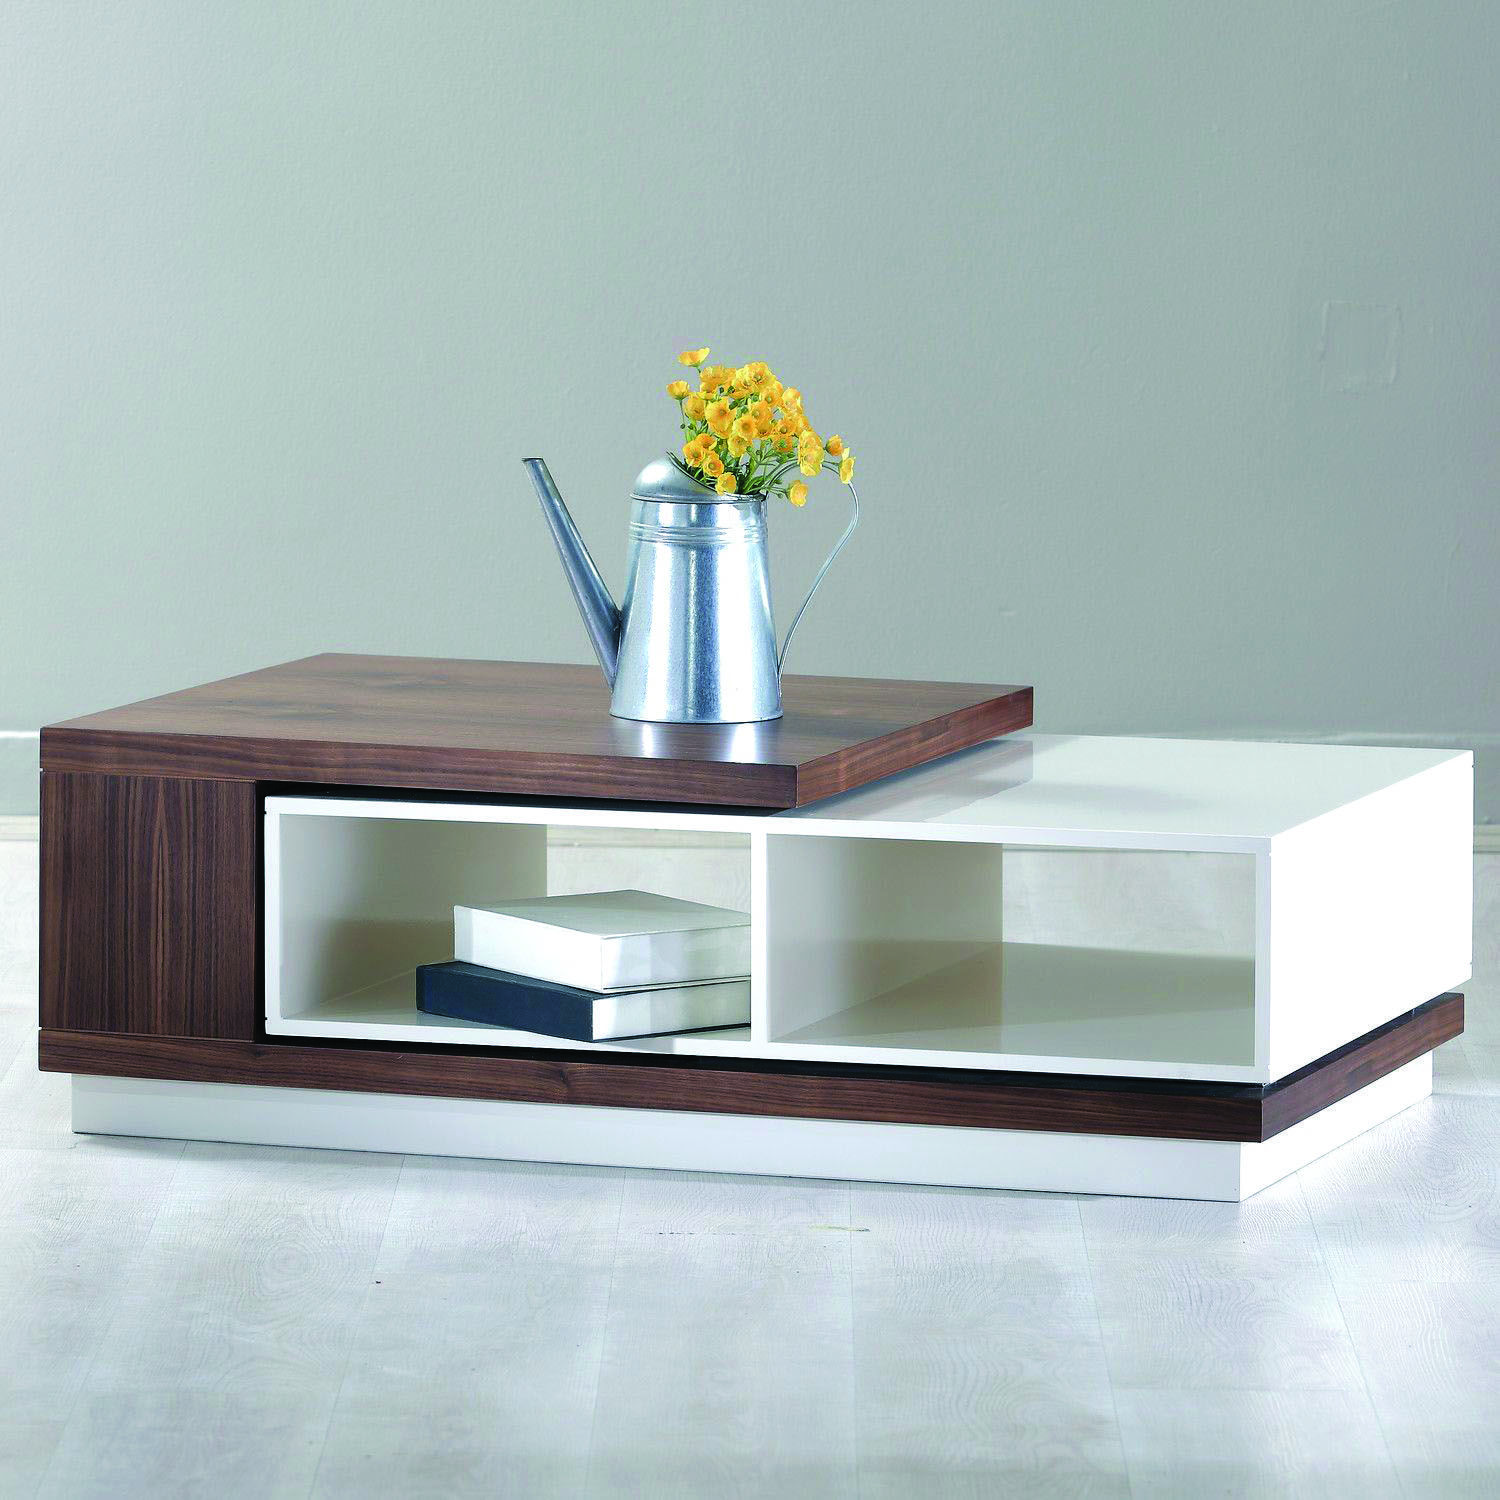 Iohomes Markham Contemporary 2 Drawer Coffee Table White Sale Coffee Tables Shop Buymorecoffee Com Coffee Table Coffee Table White Modern Coffee Tables